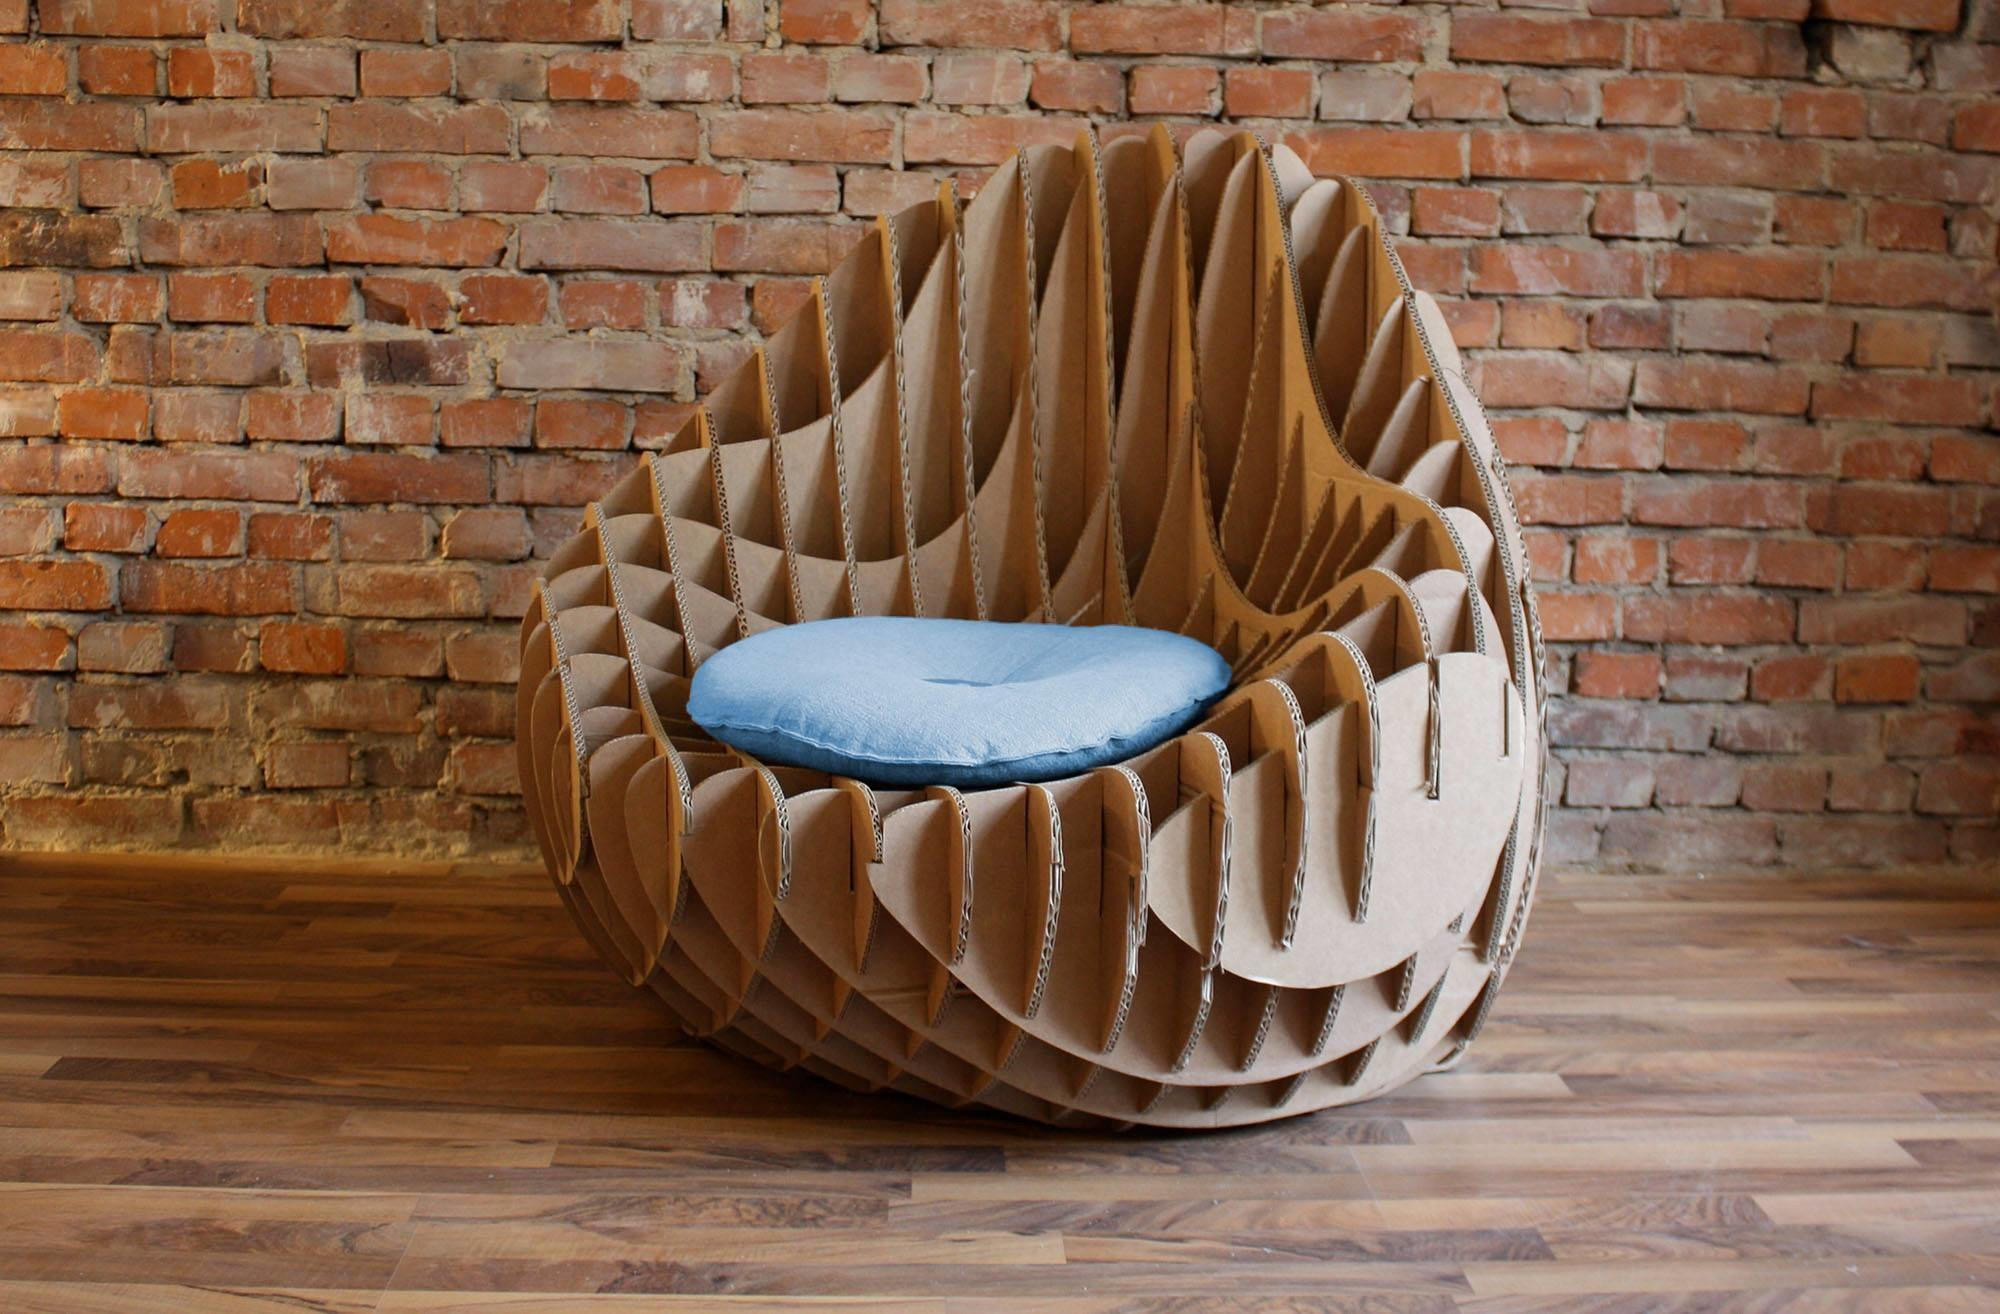 205 Recycled Cardboard Armchair Crowdyhouse